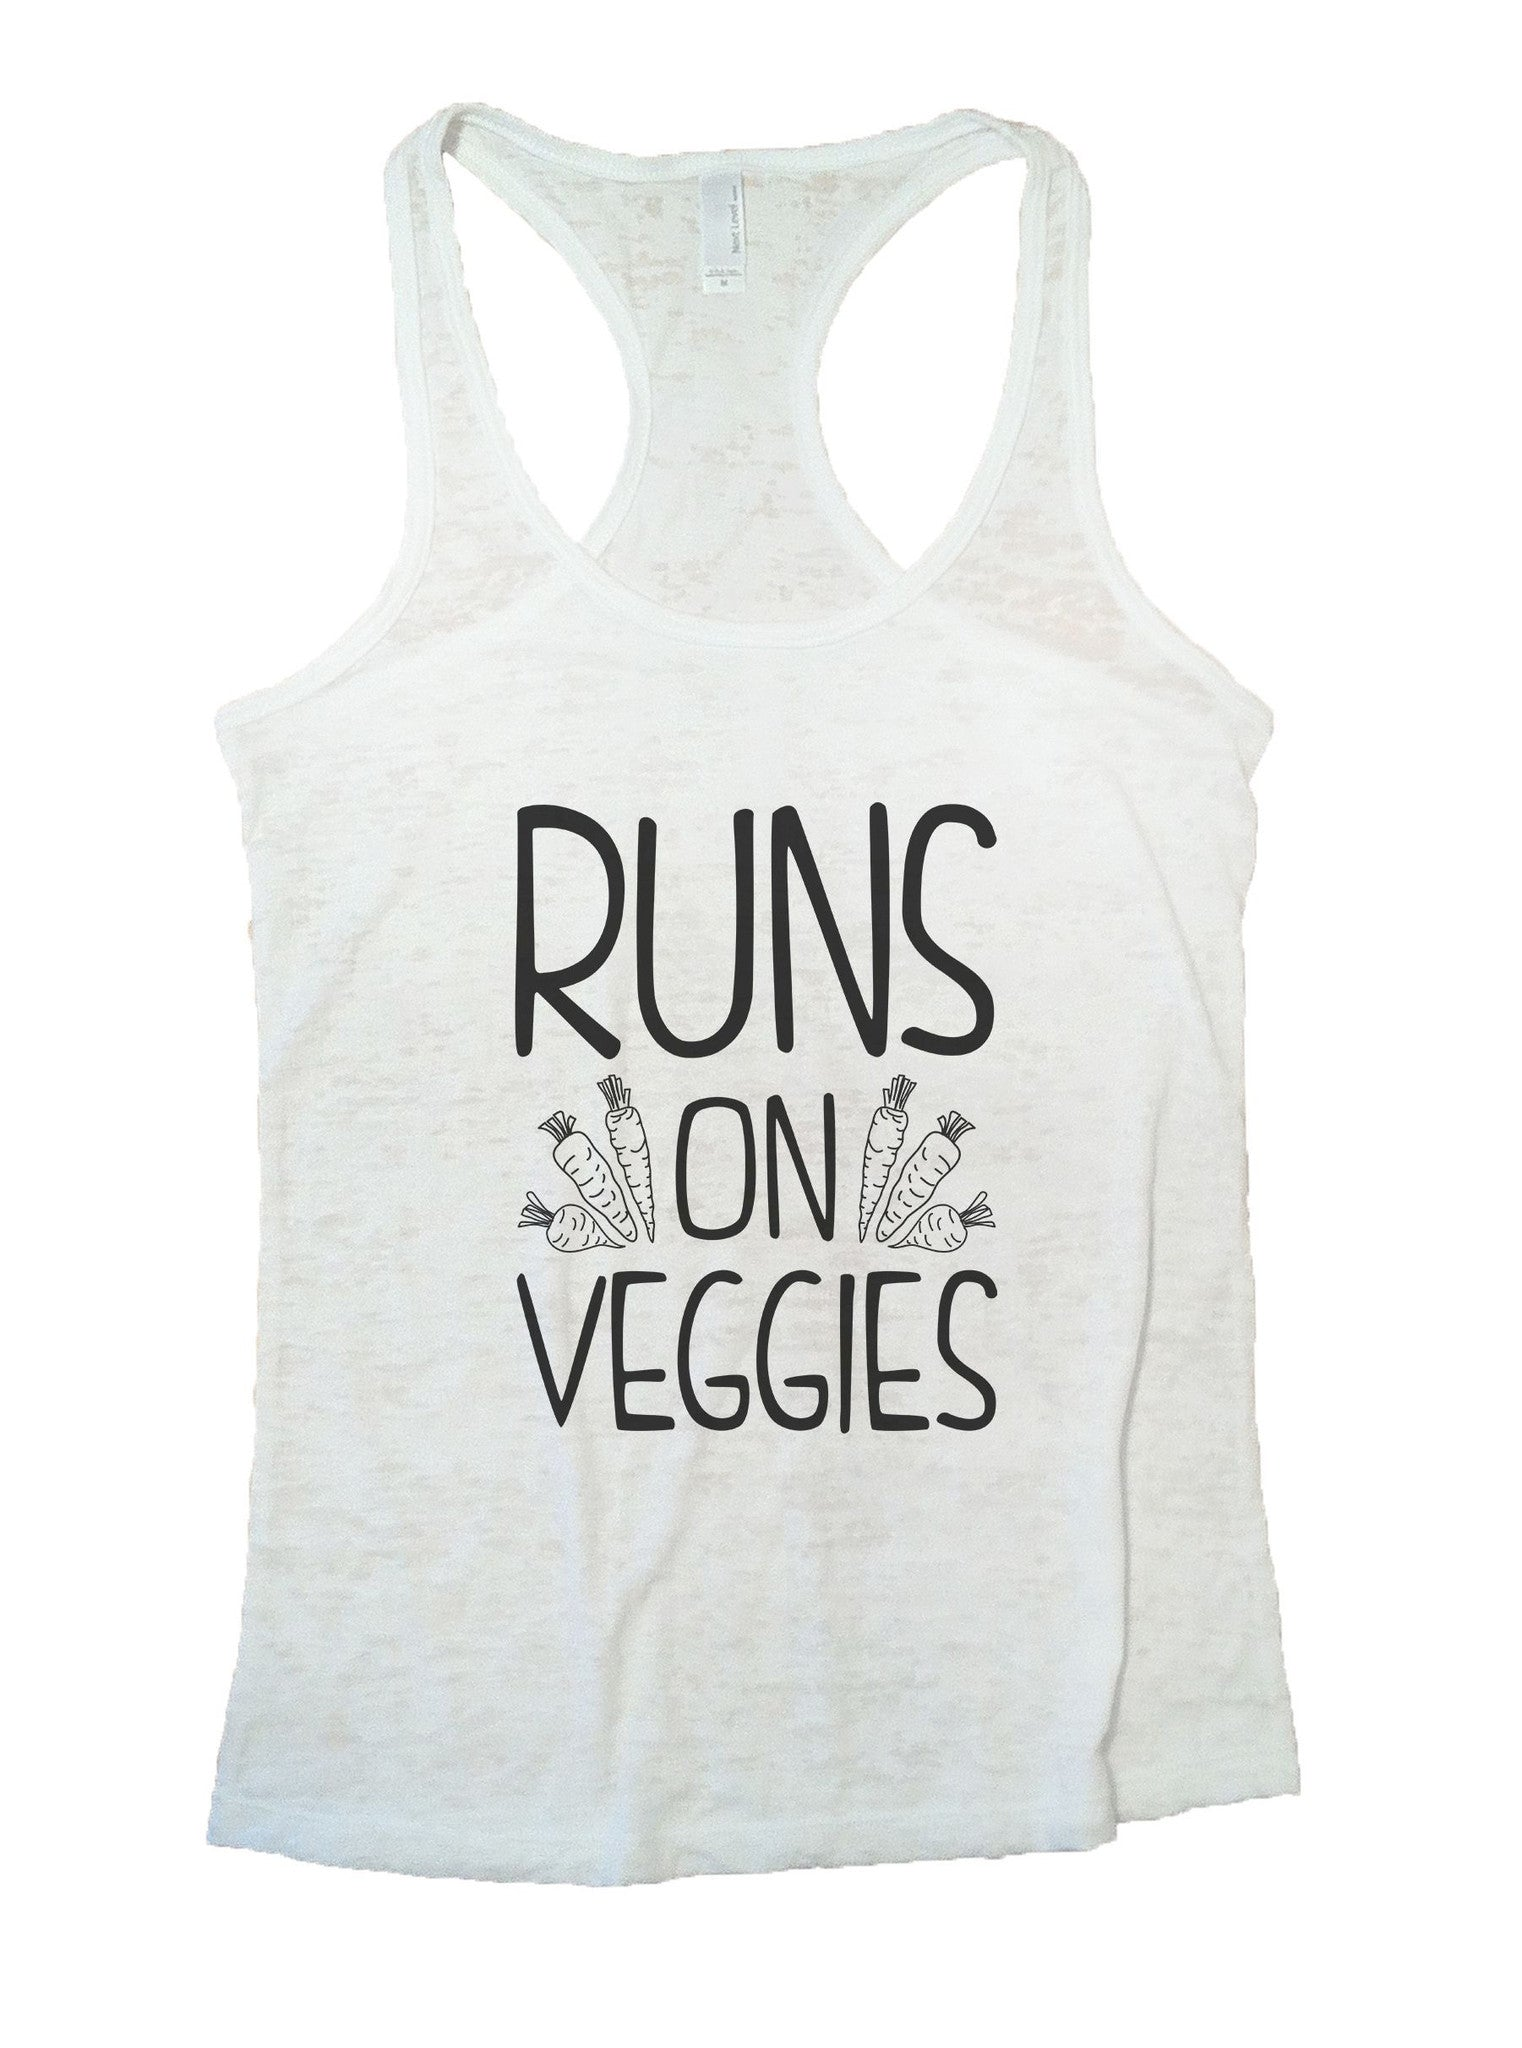 Runs On Veggies Burnout Tank Top By BurnoutTankTops.com - 1074 - Funny Shirts Tank Tops Burnouts and Triblends  - 6